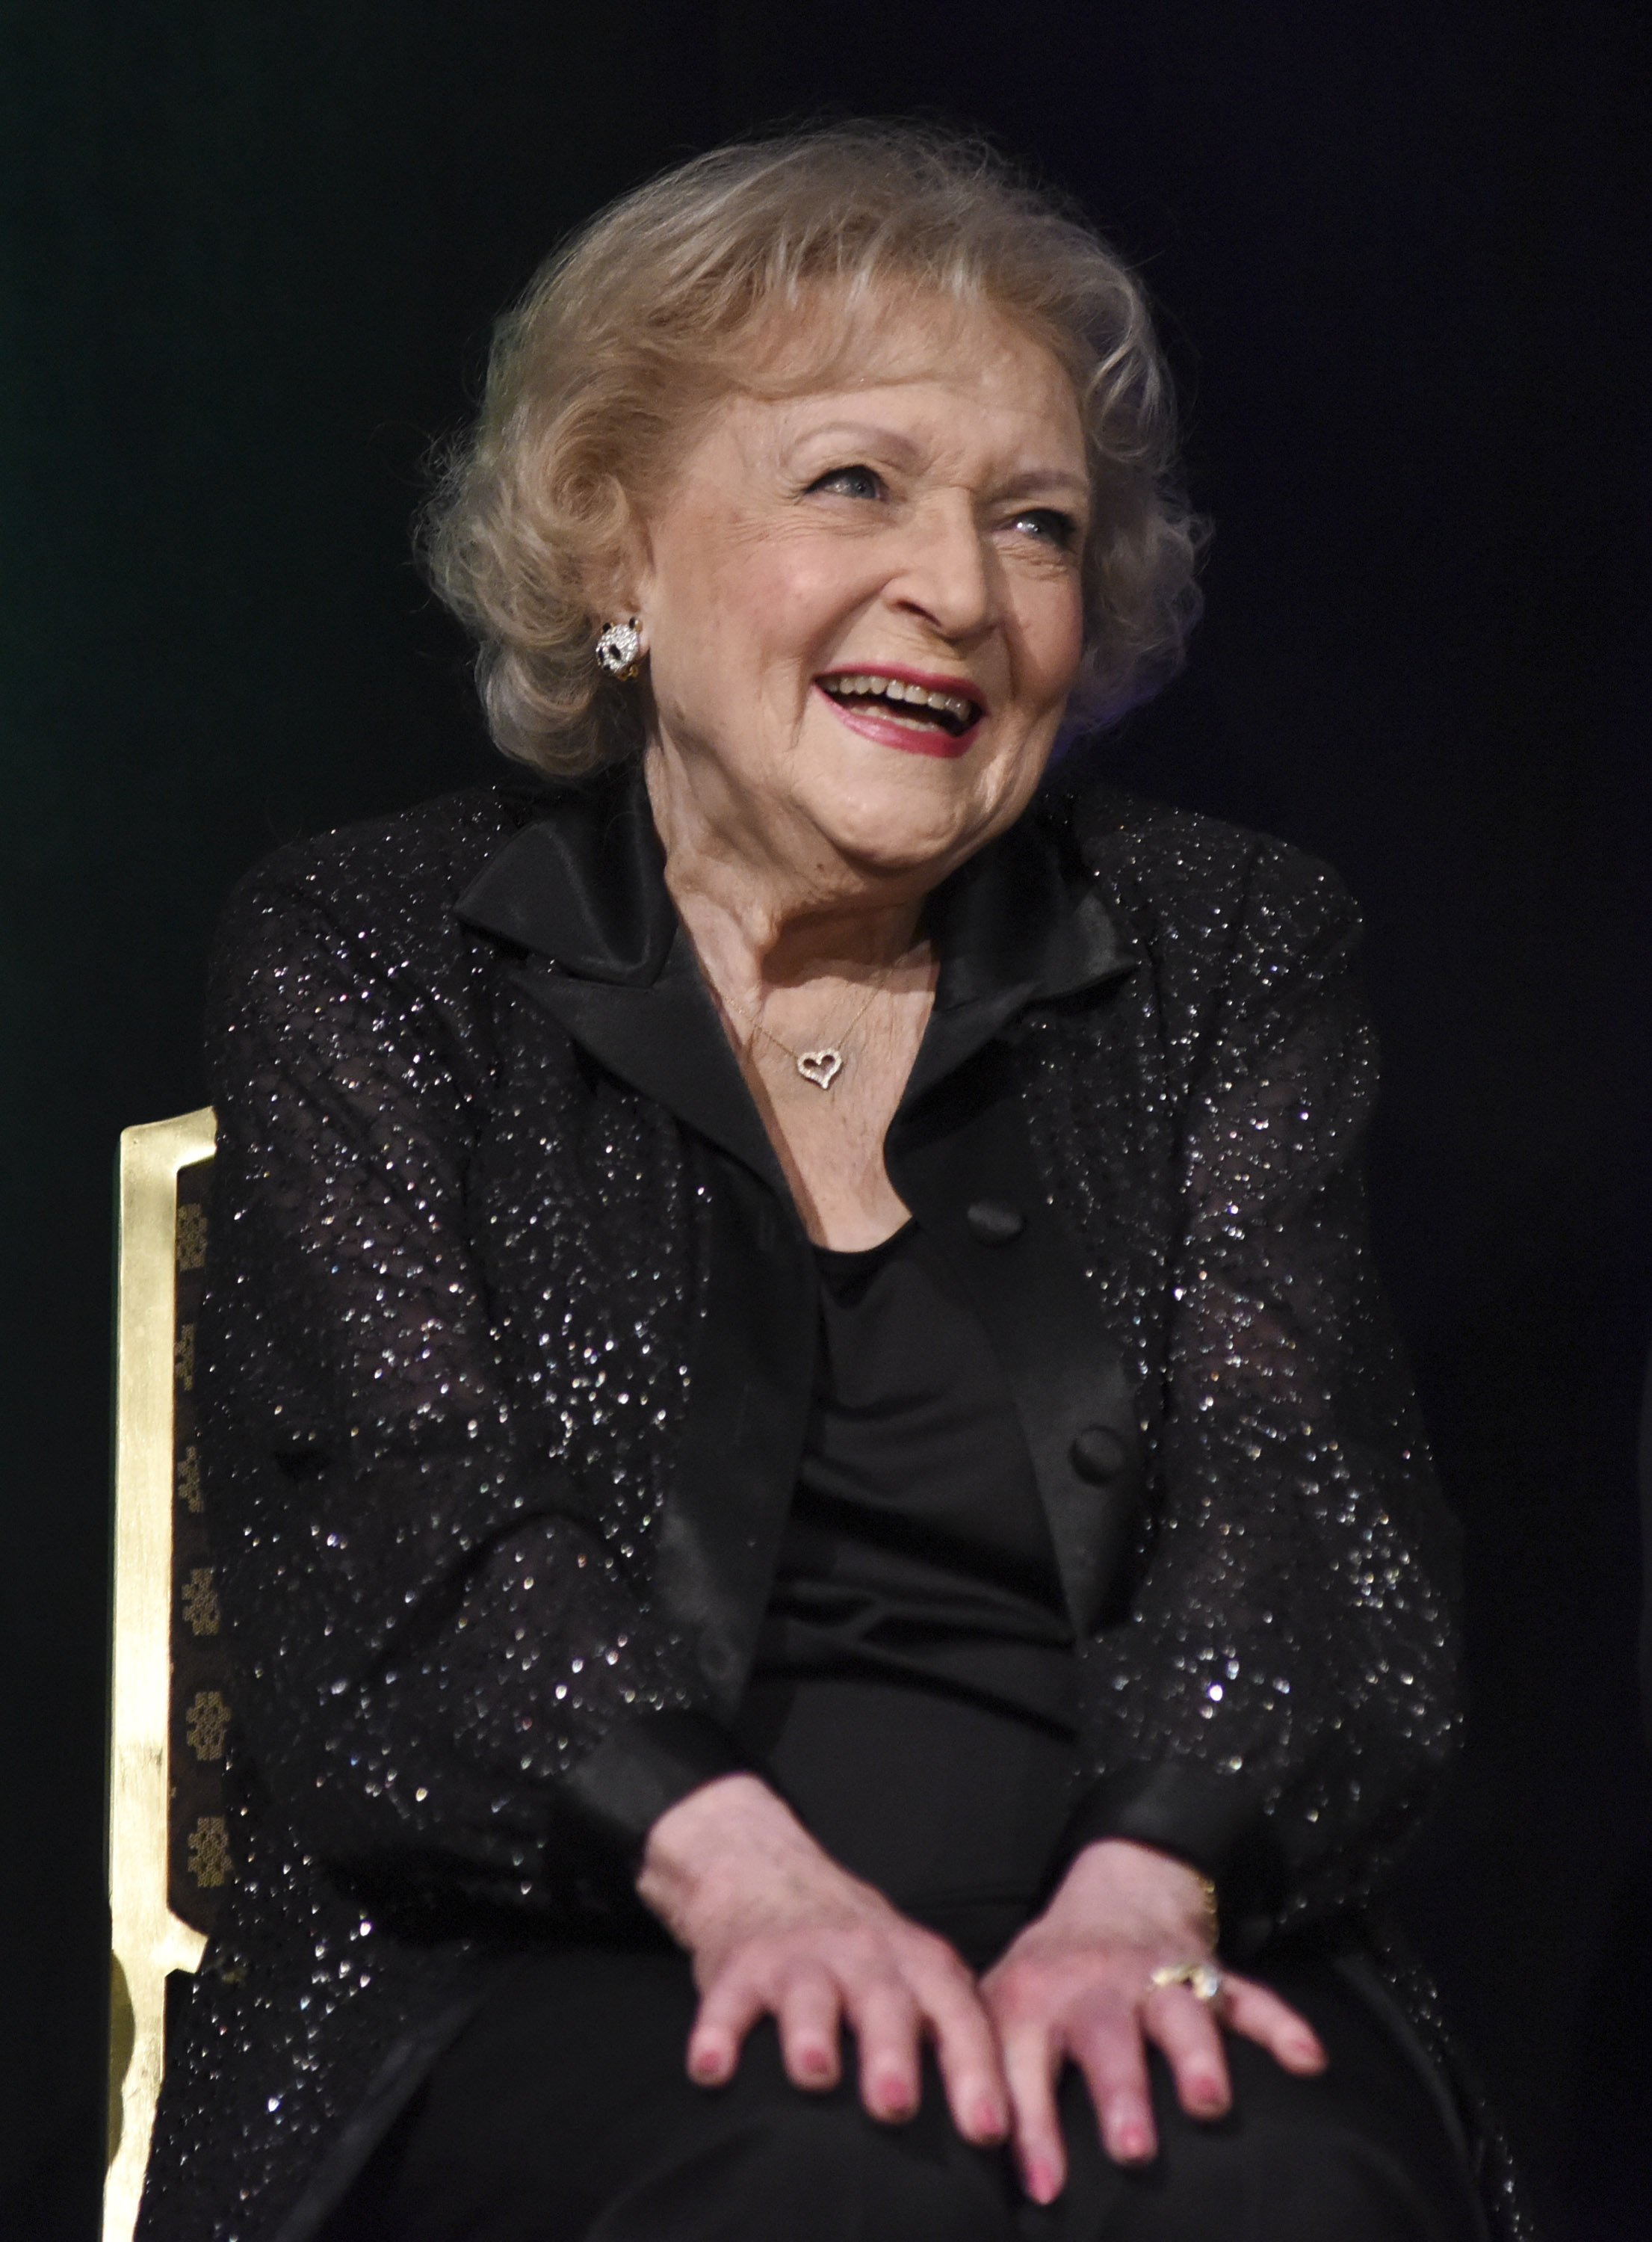 Betty White attends The TMA 2015 Heller Awards on May 28, 2015, in Century City, California. | Source: Getty Images.